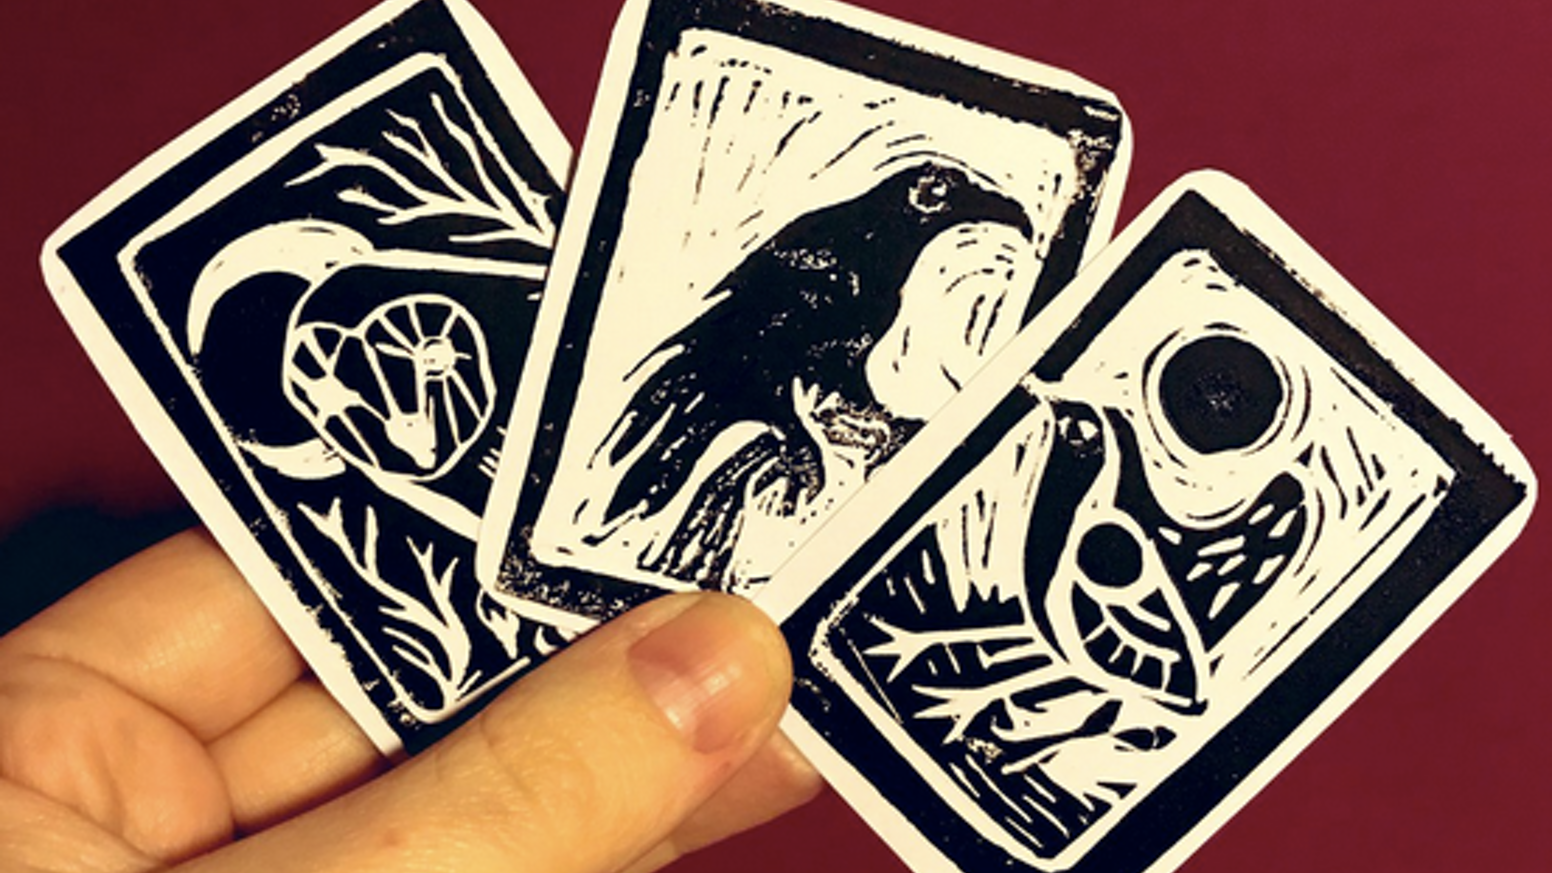 A limited-edition set of hand-printed oracle cards.